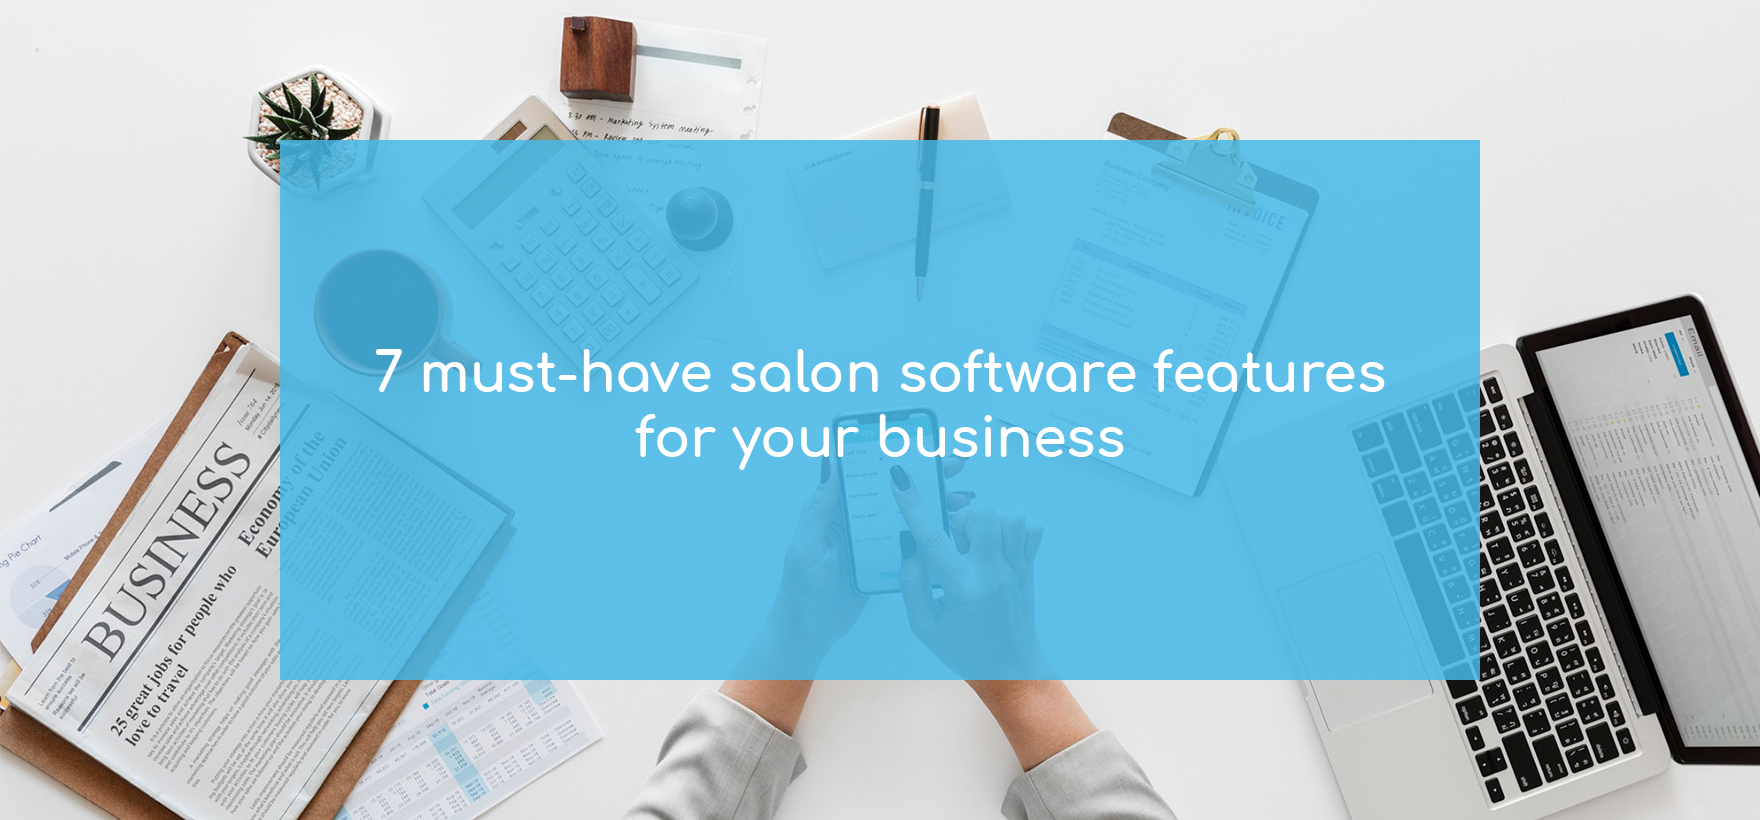 7 must-have salon software features for your business